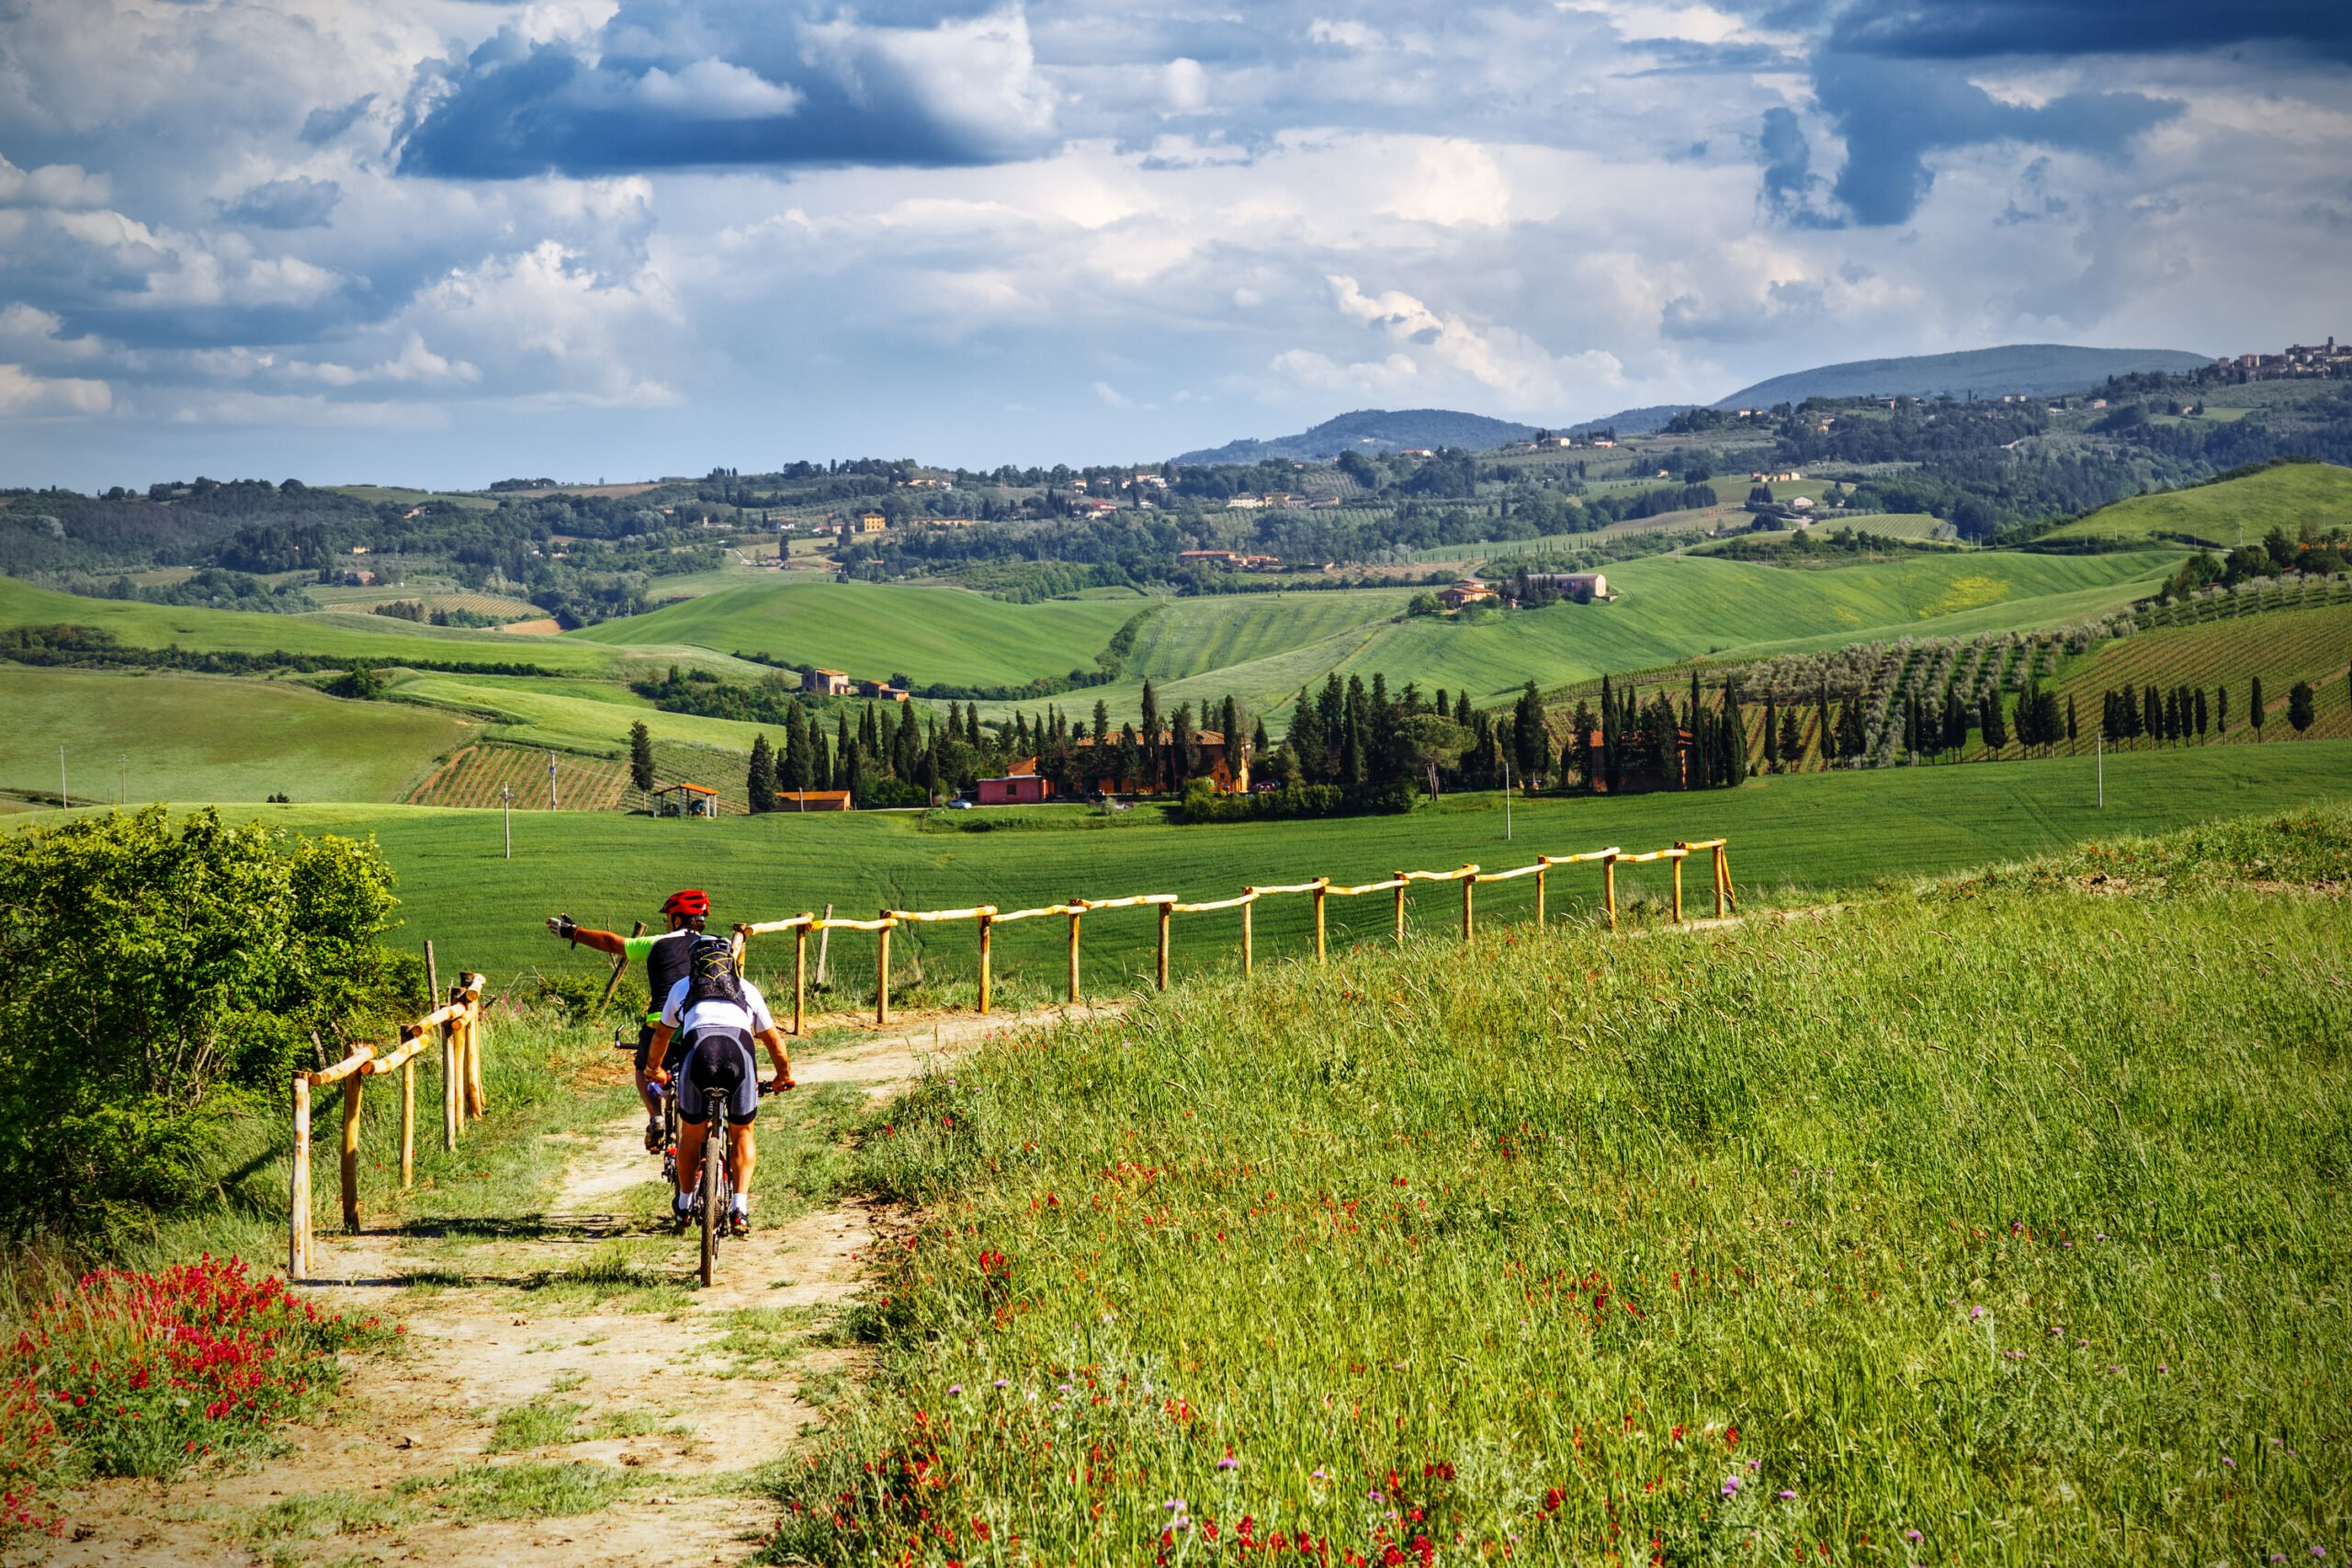 Join Our Chianti E-bike Tour From Our Siena 5 Day City Break Tour Package